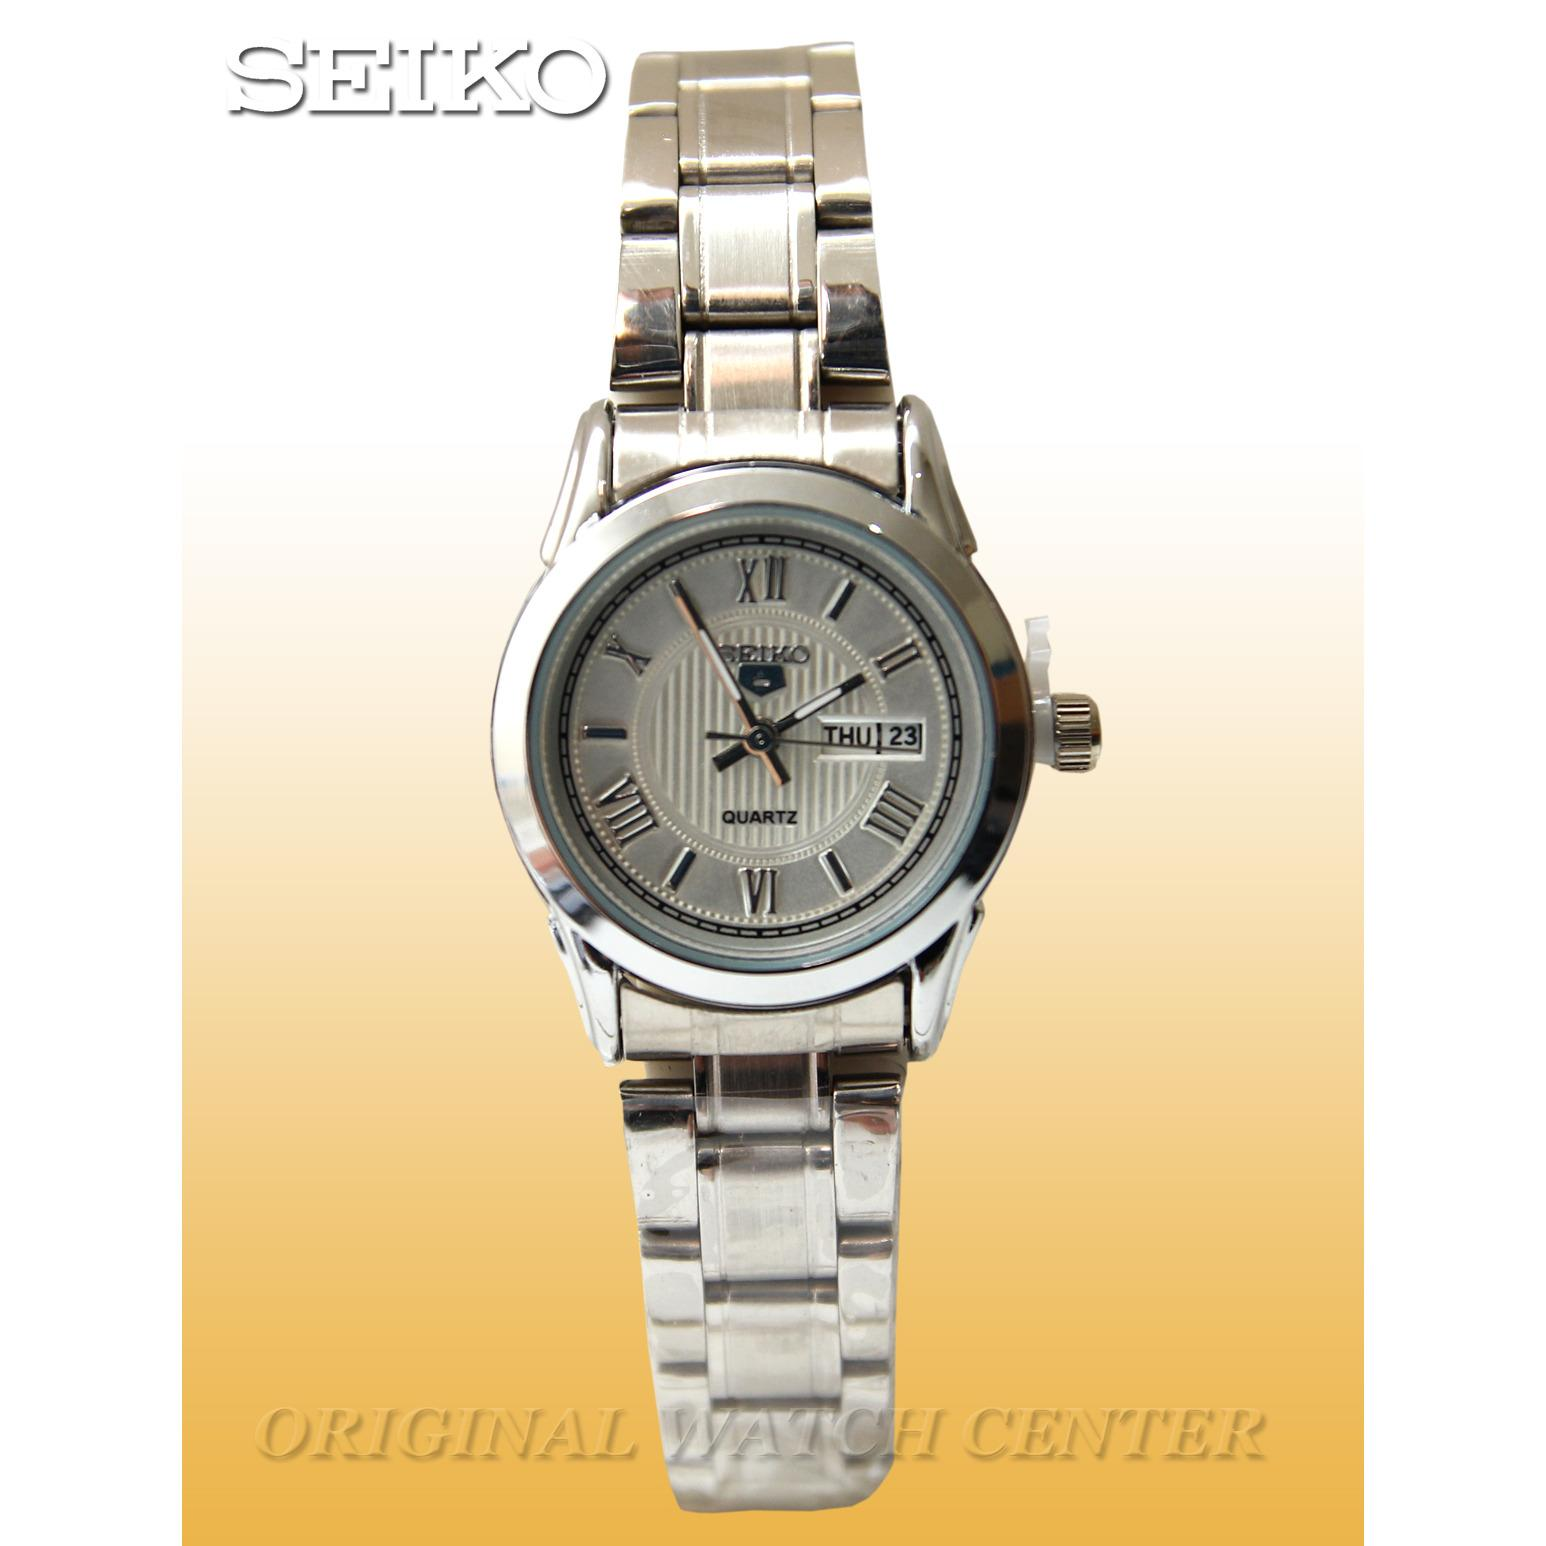 Seiko Presage Automatic Jam Tangan Tali Stainless Steel Silver Rose Ssa303j1 Reserve Indicator Ssa303 Pria Wanita Ds Business Swiss Army Lazadaco